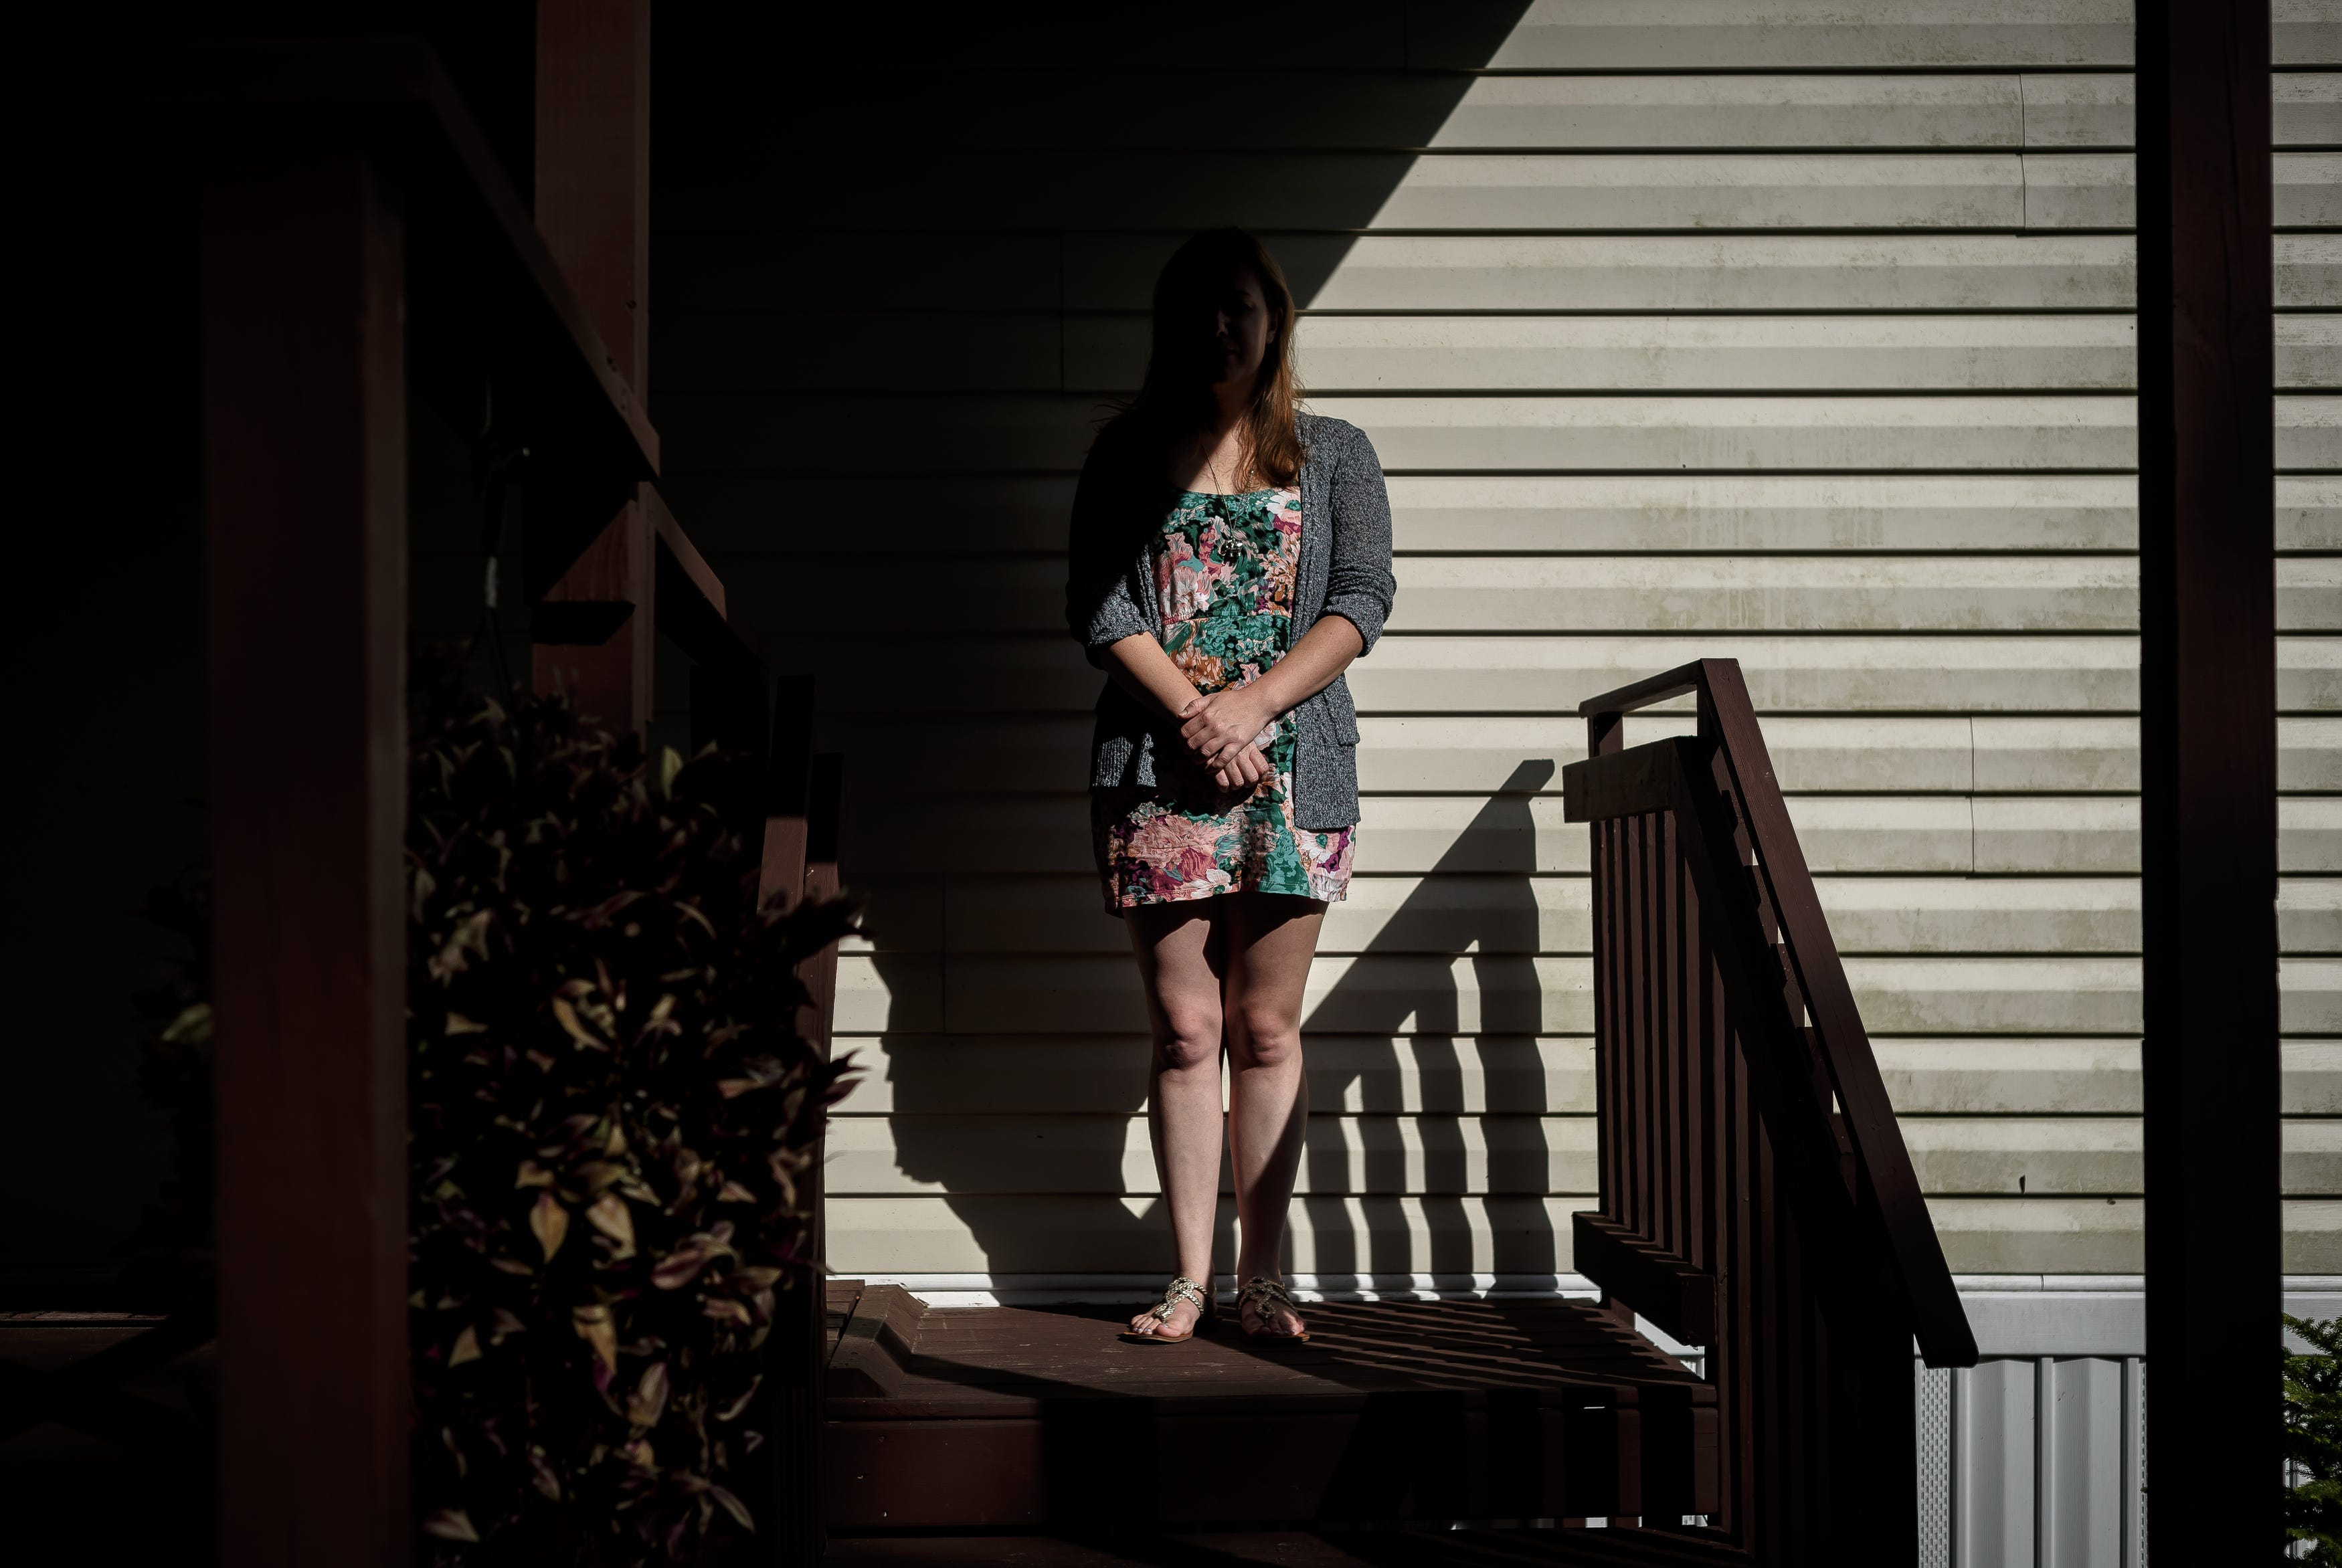 Leah Gunion, shown outside her home in New Smyrna Beach, Fla., didn't think she could get pregnant. The joy of her surprise pregnancy was overshadowed by grief when her soldier husband died by suicide.